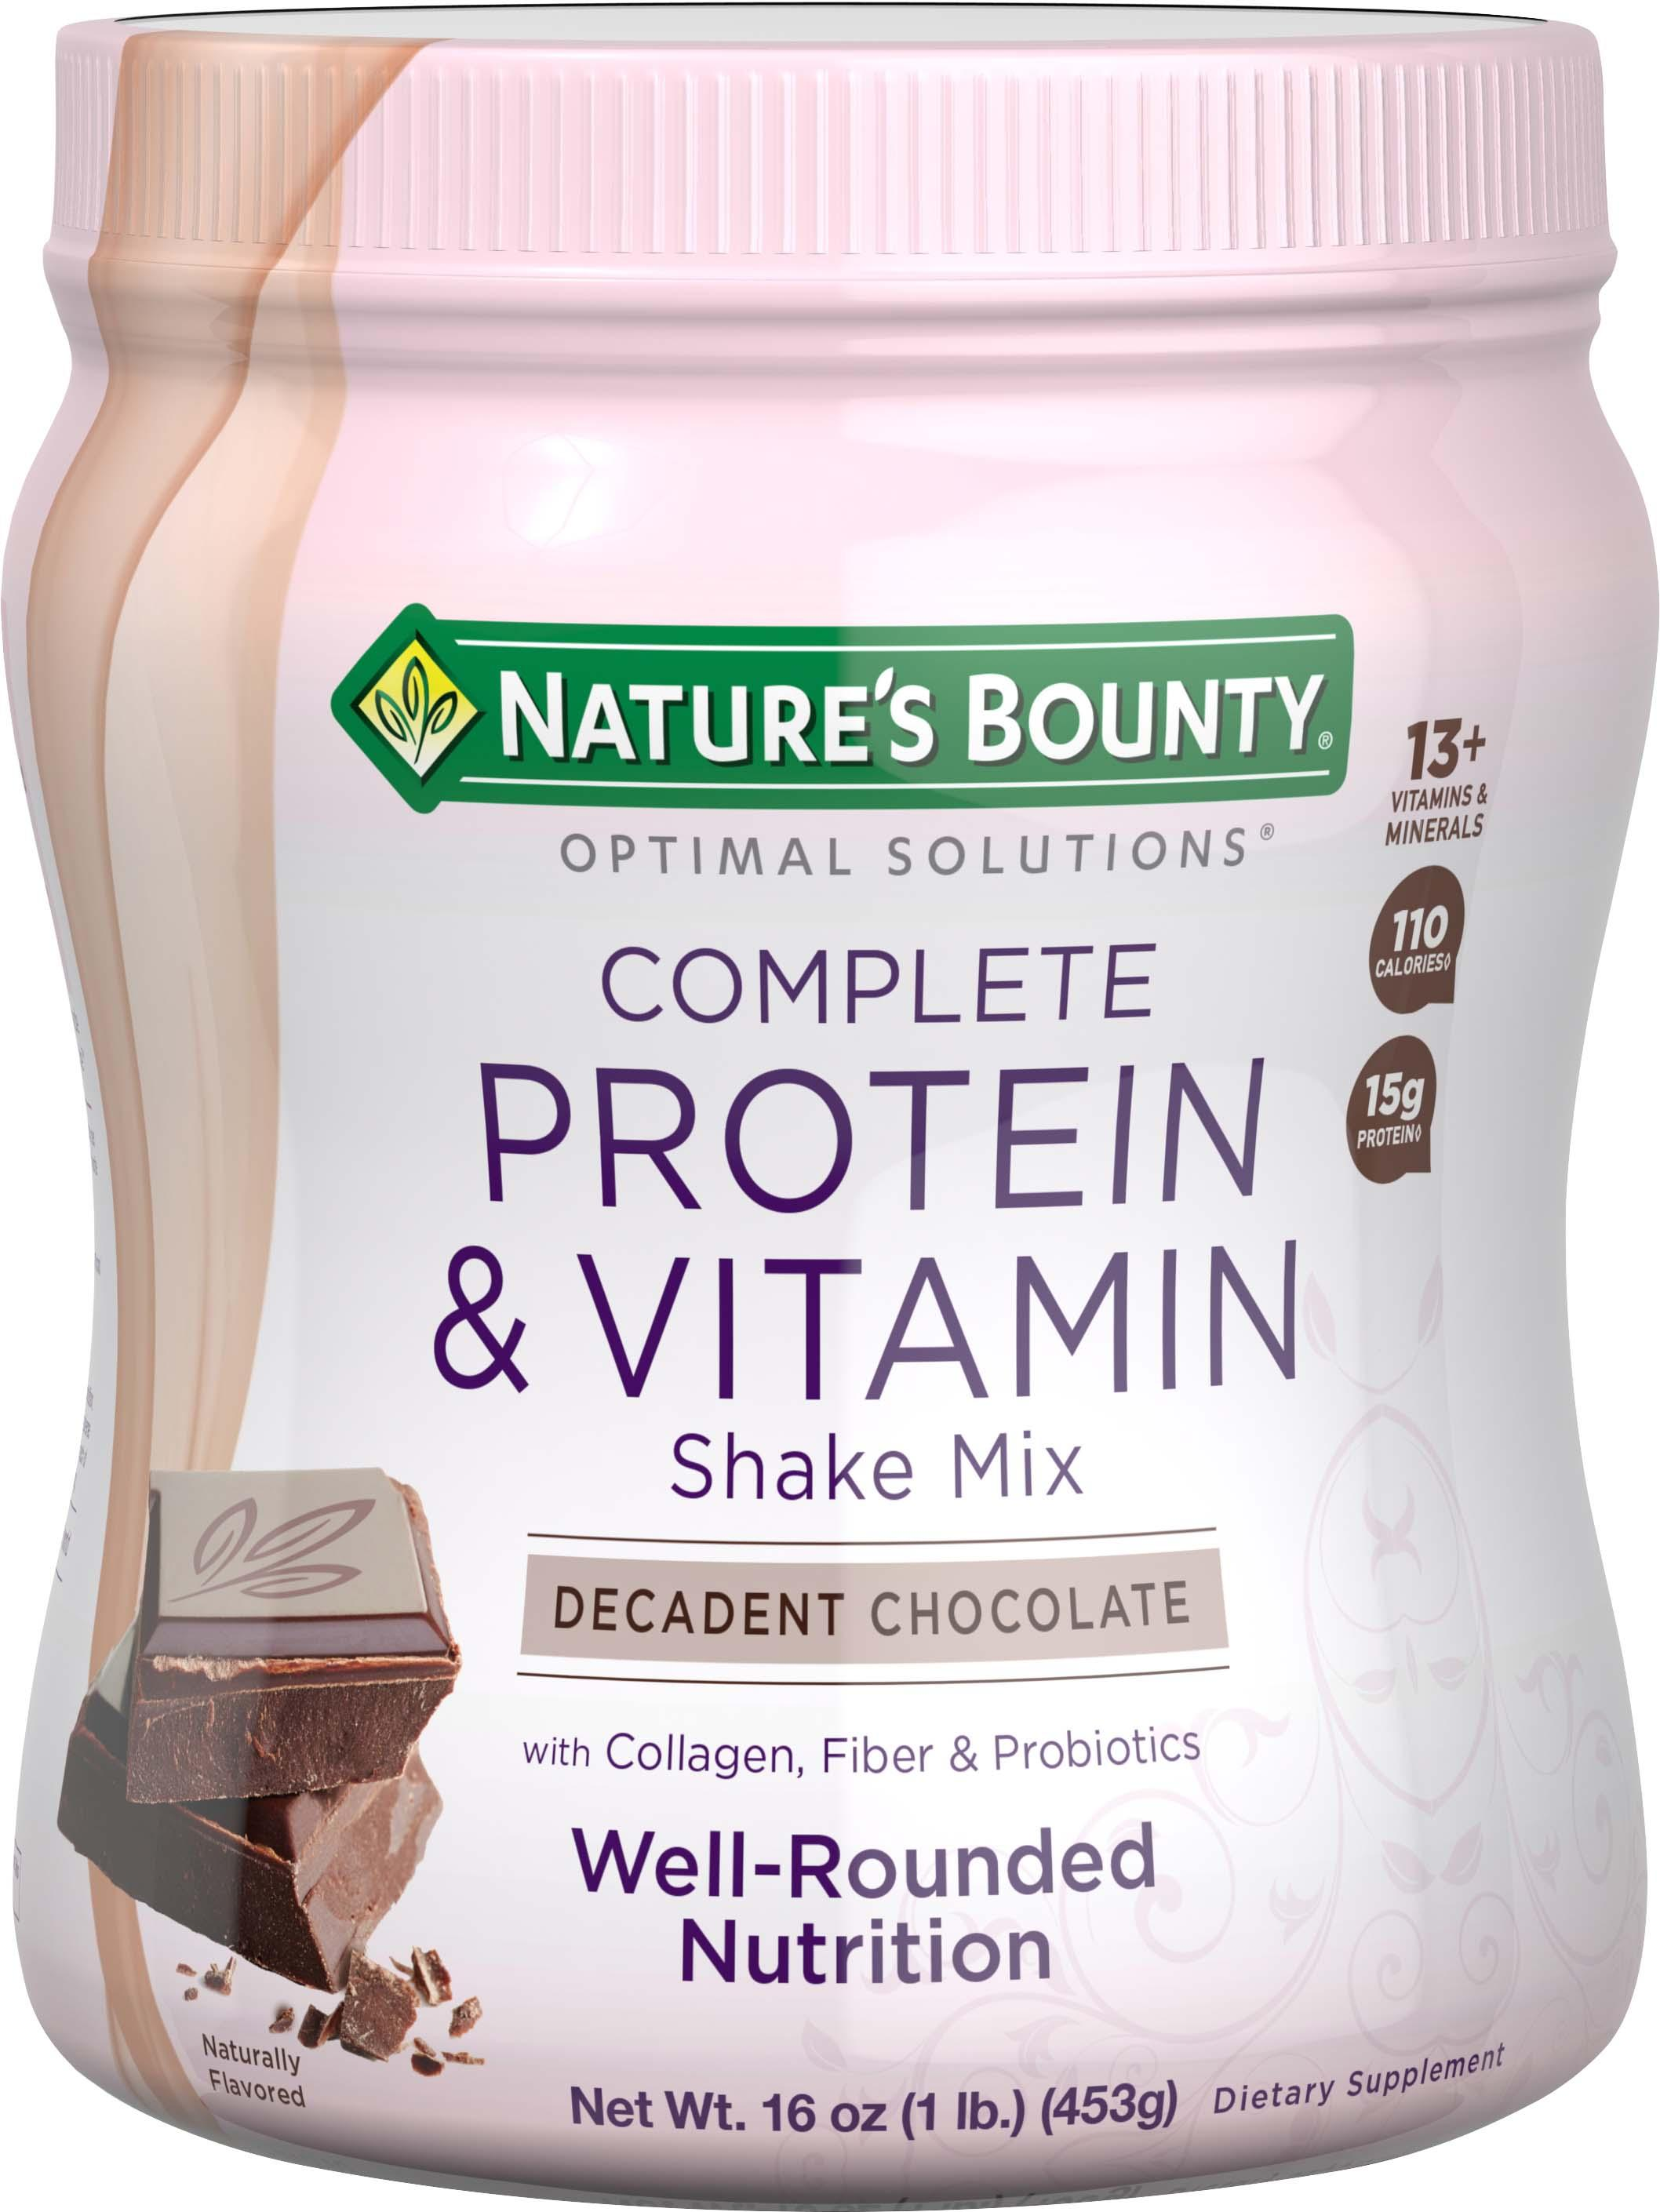 Reviews On Nature S Bounty Protein Shake